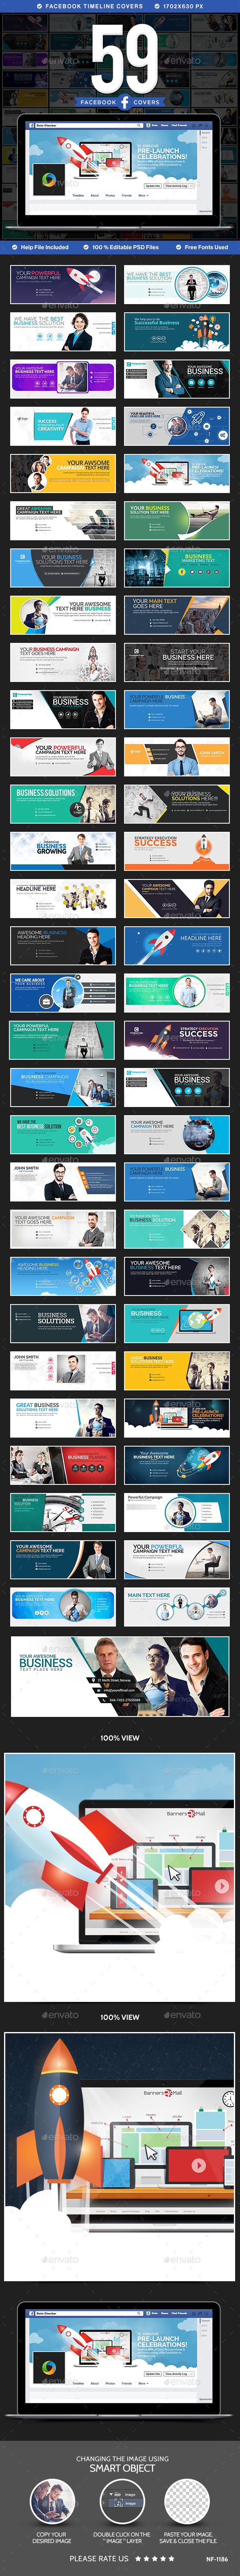 59 Mega Facebook Timeline Covers Template PSD. Download here: http://graphicriver.net/item/mega-facebook-timeline-covers-bundle-59-designs-/15374921?ref=ksioks